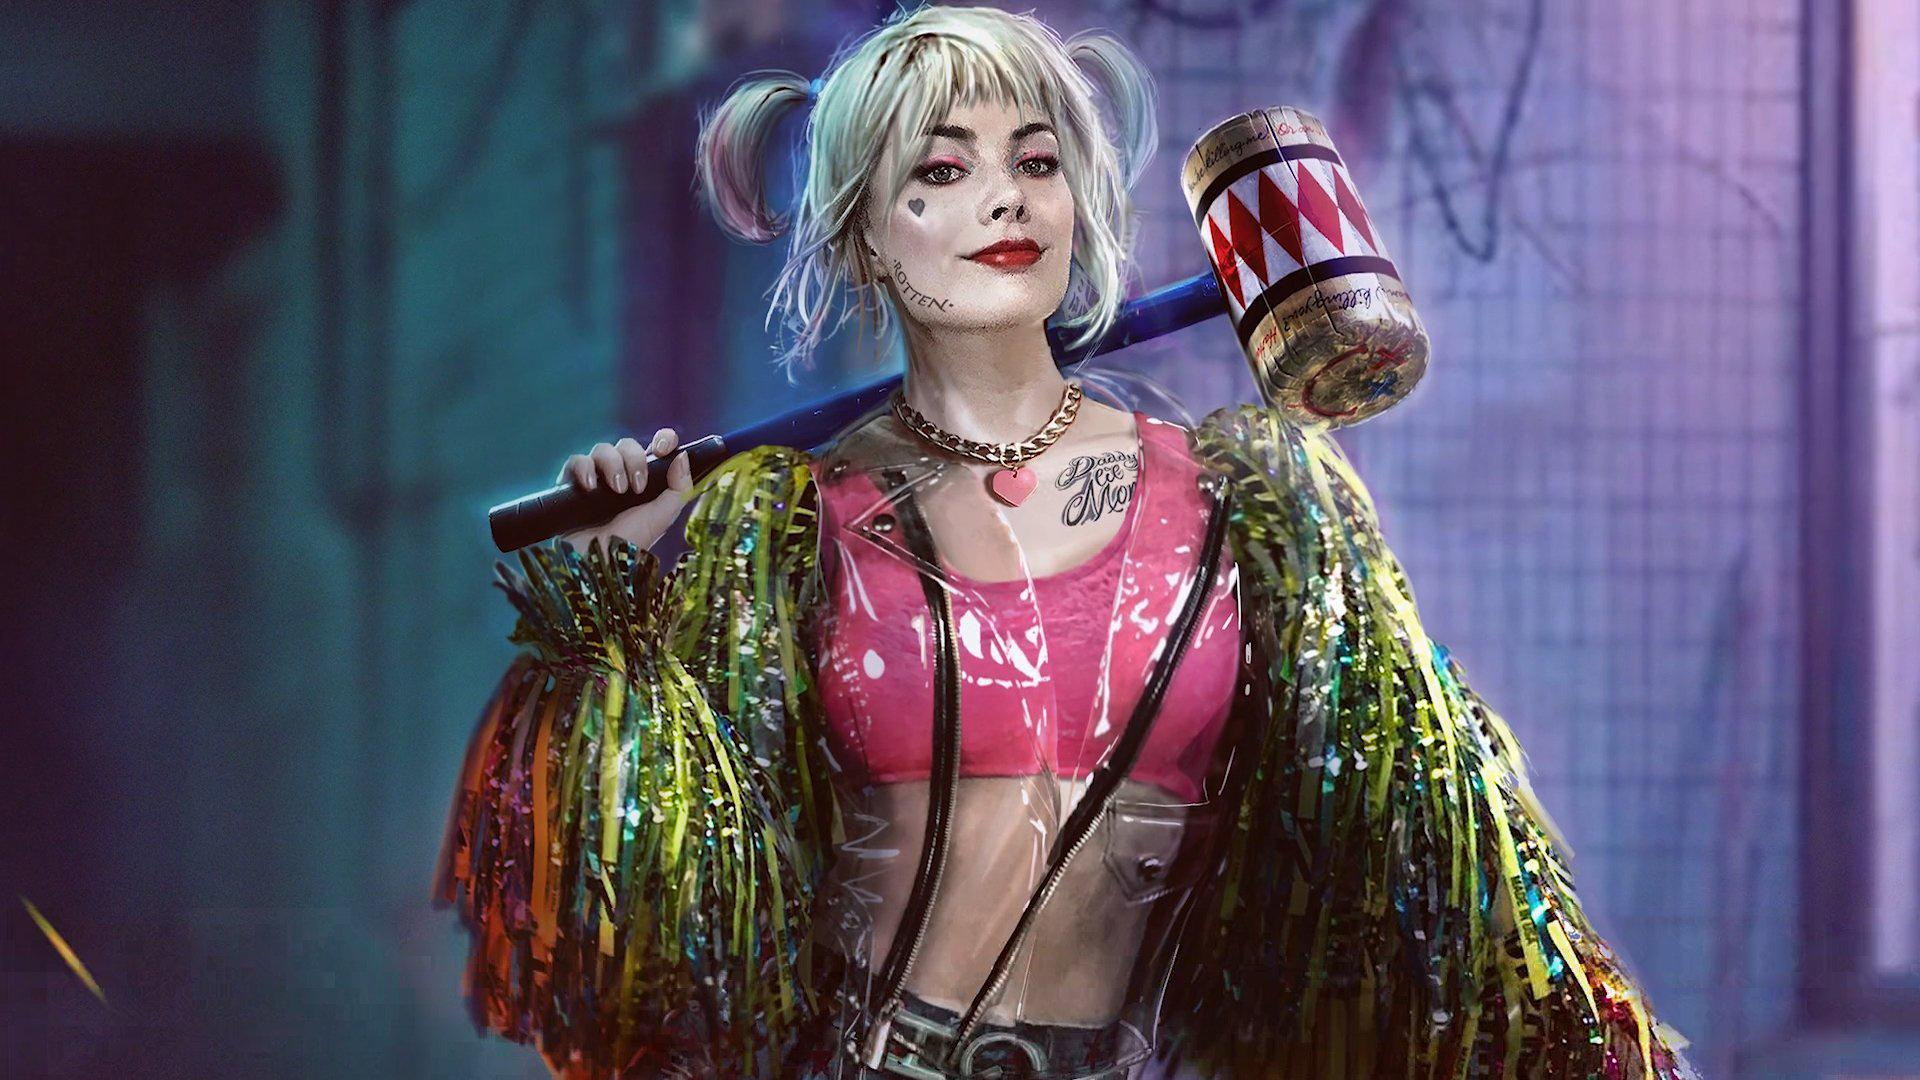 Harley Quinn Birds Of Prey Wallpapers Wallpaper Cave